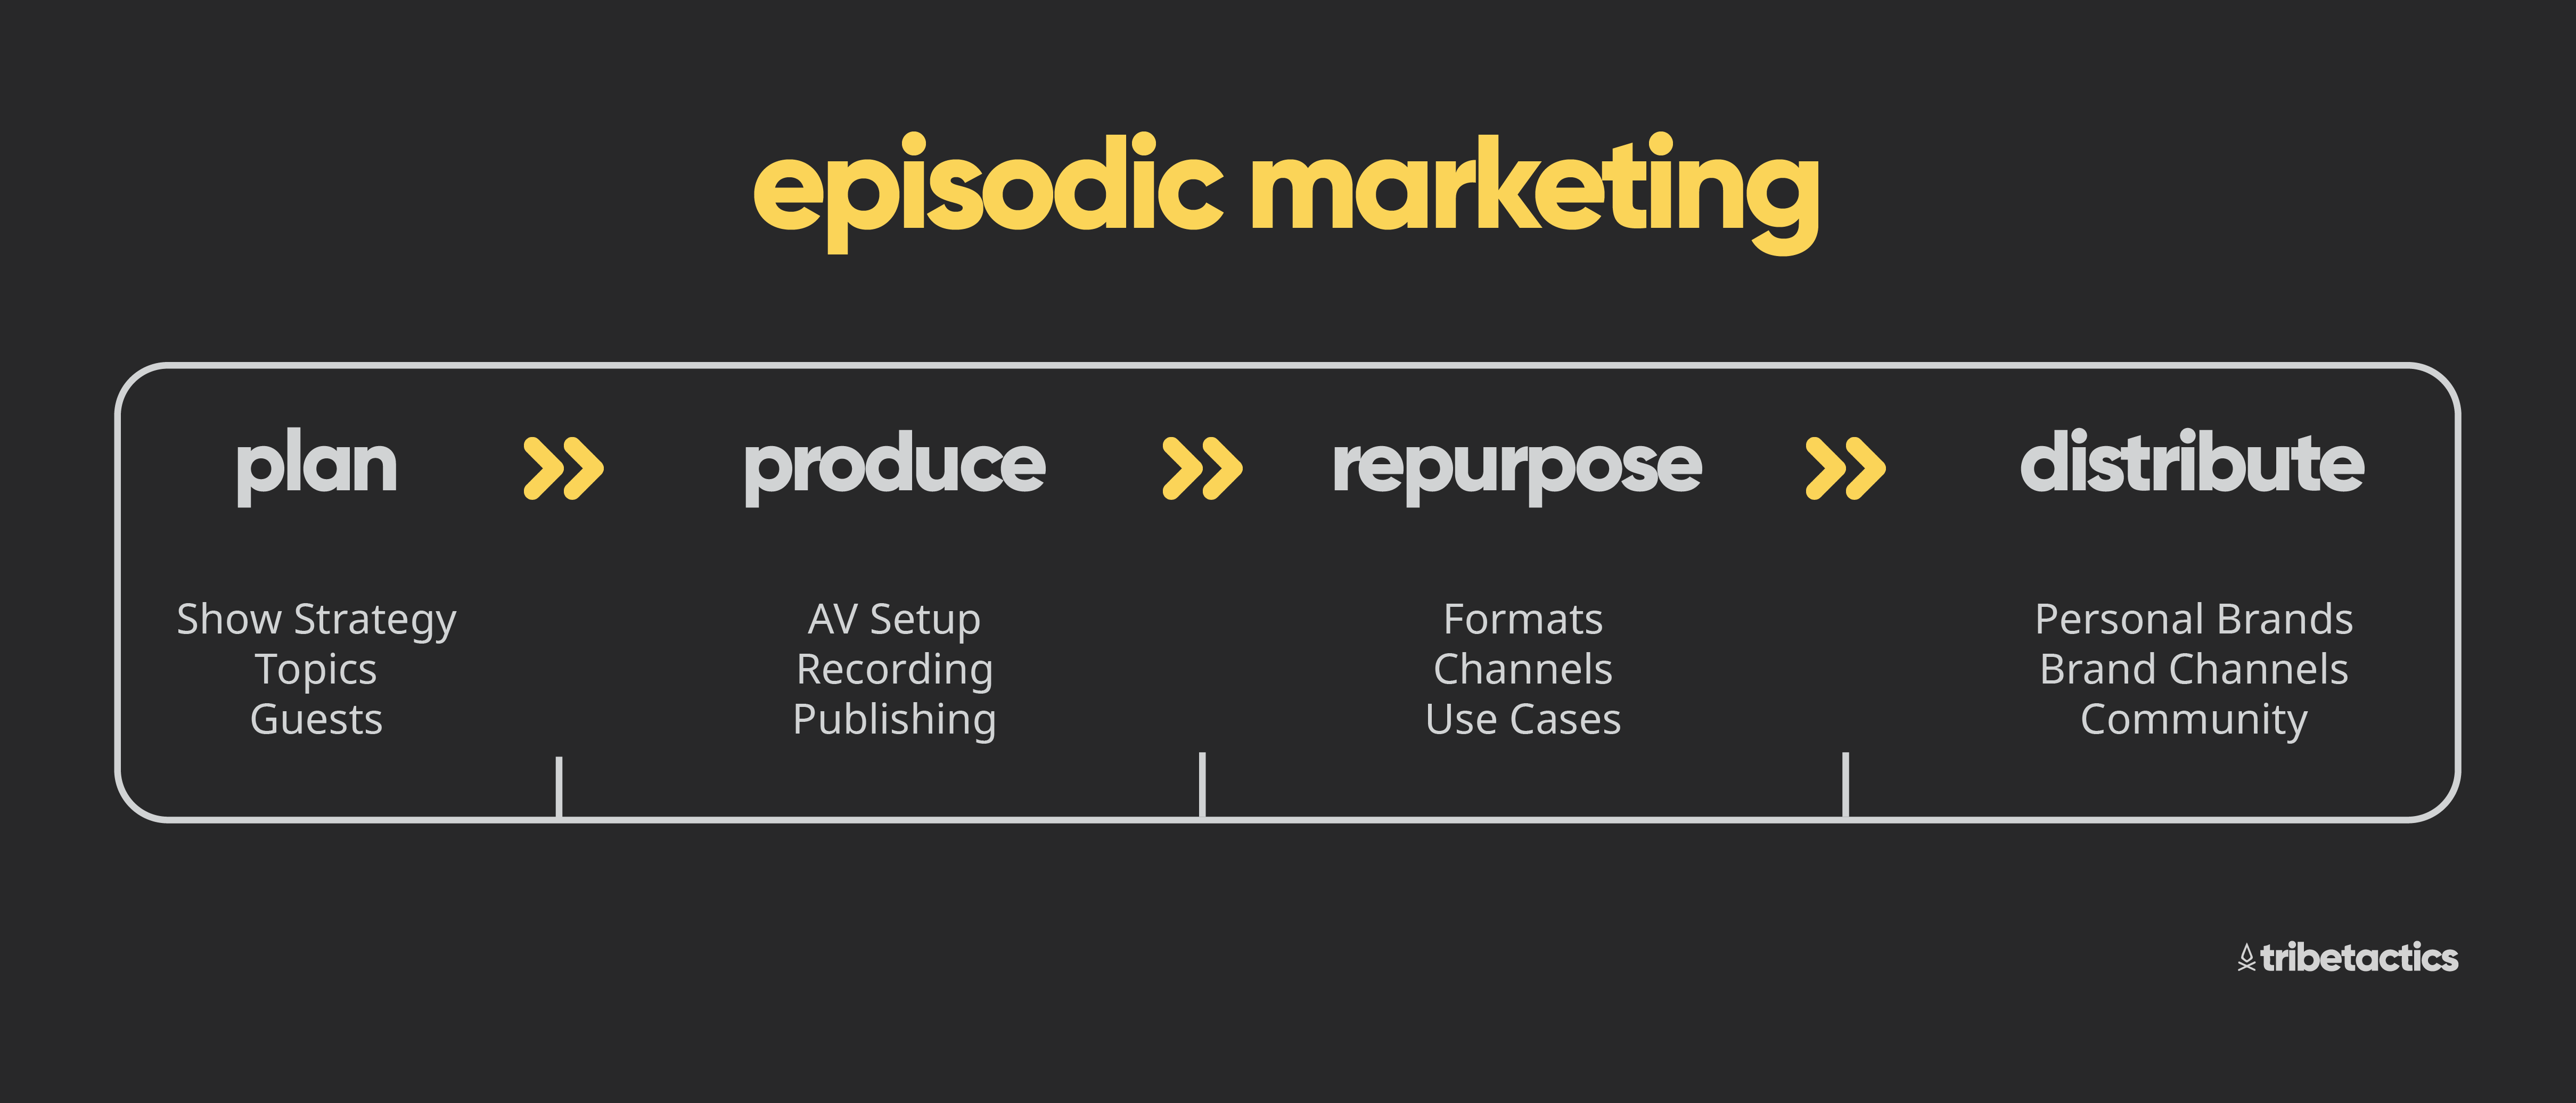 What Is Episodic Marketing?